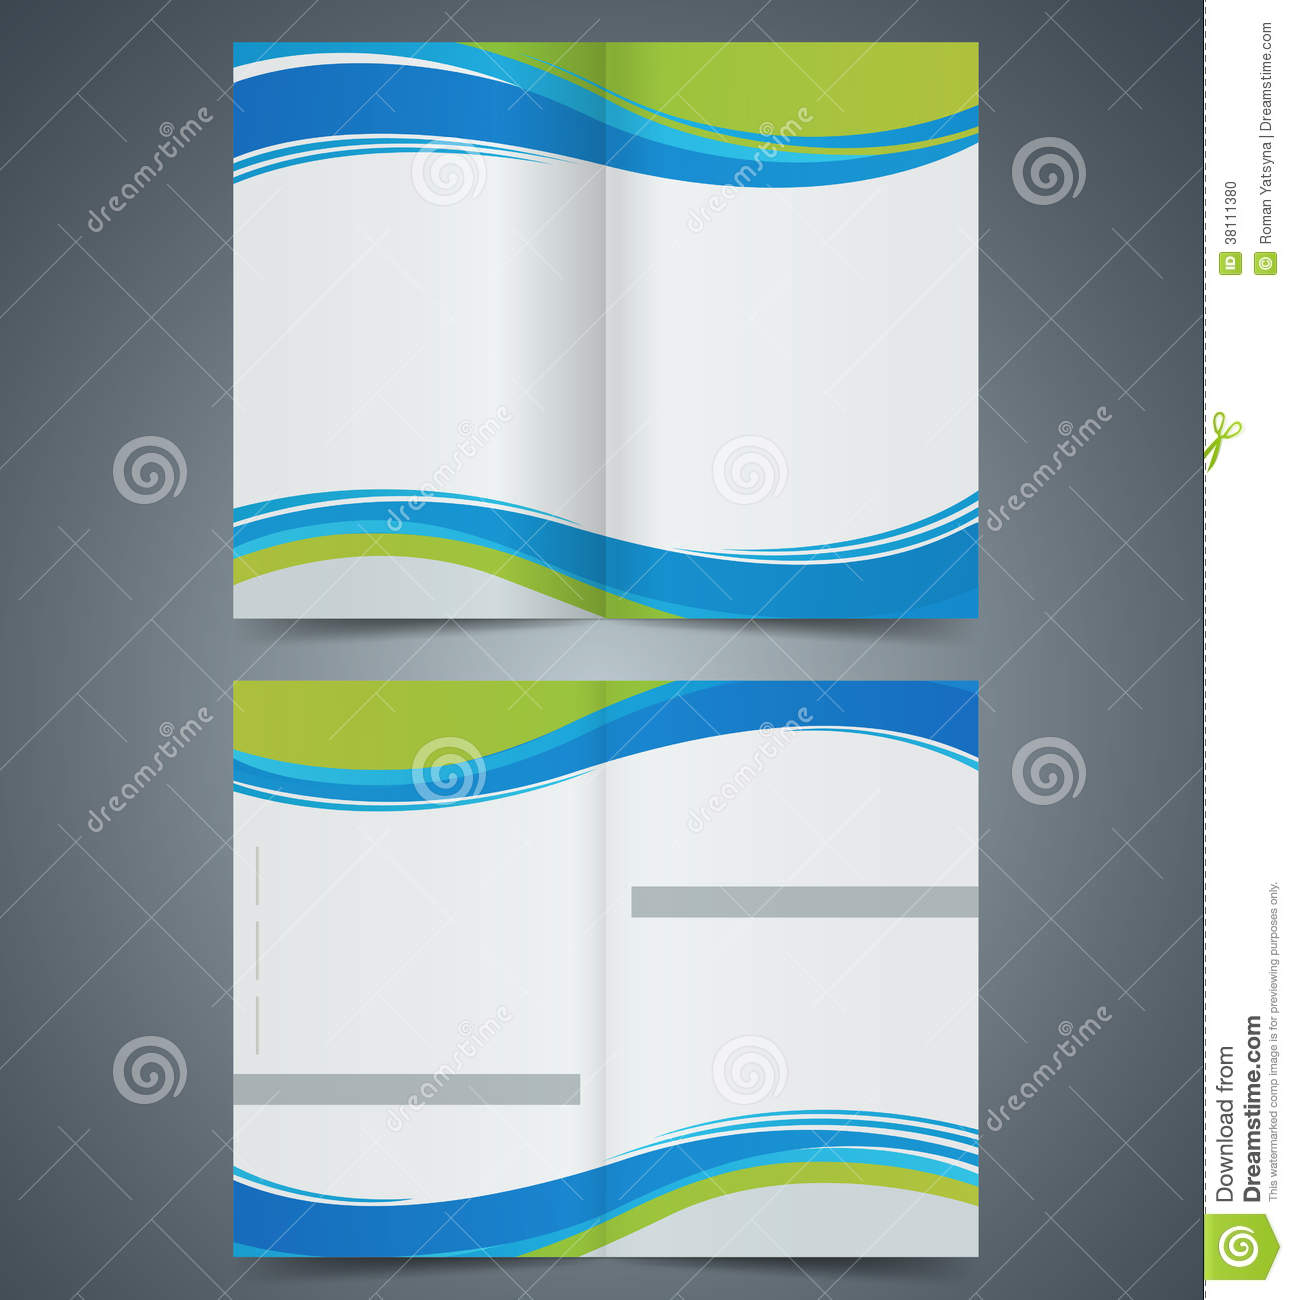 brochure booklet templates - brochure template design with green elements layo stock